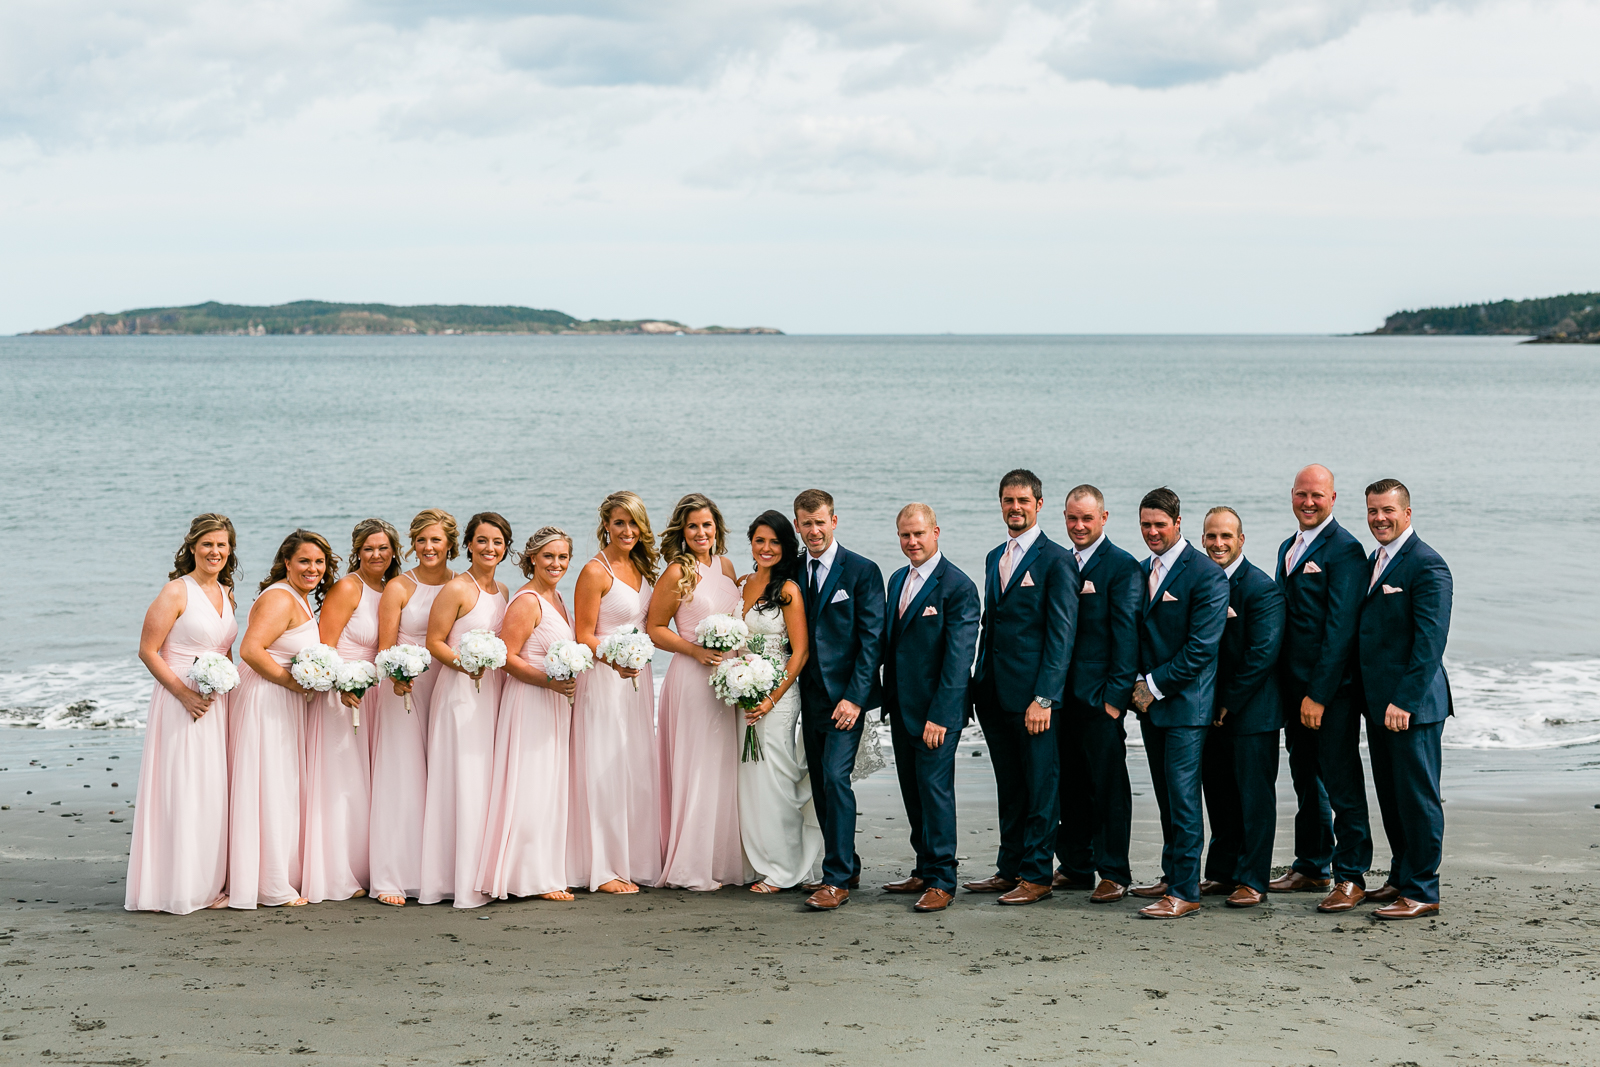 0043st-johns-newfoundland-wedding-photographer-glendenning.jpg